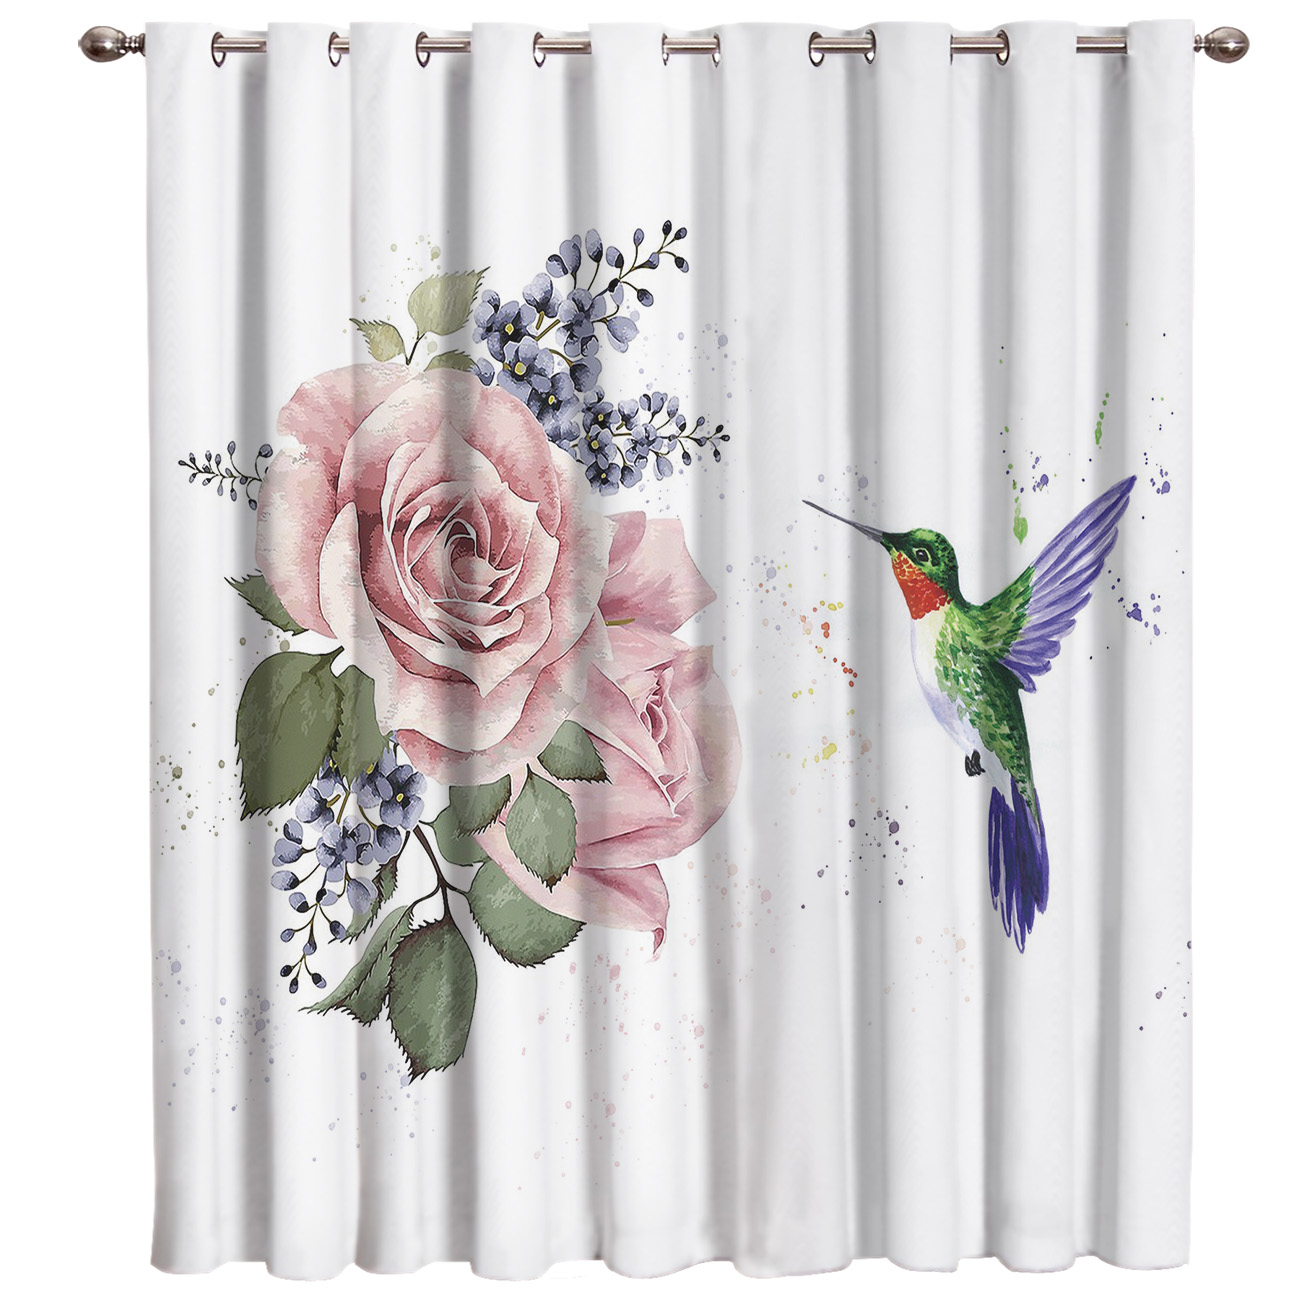 The Hummingbird Flew To The Petal Floral Fabric Kids Window Treatment Hardware Sets Curtain